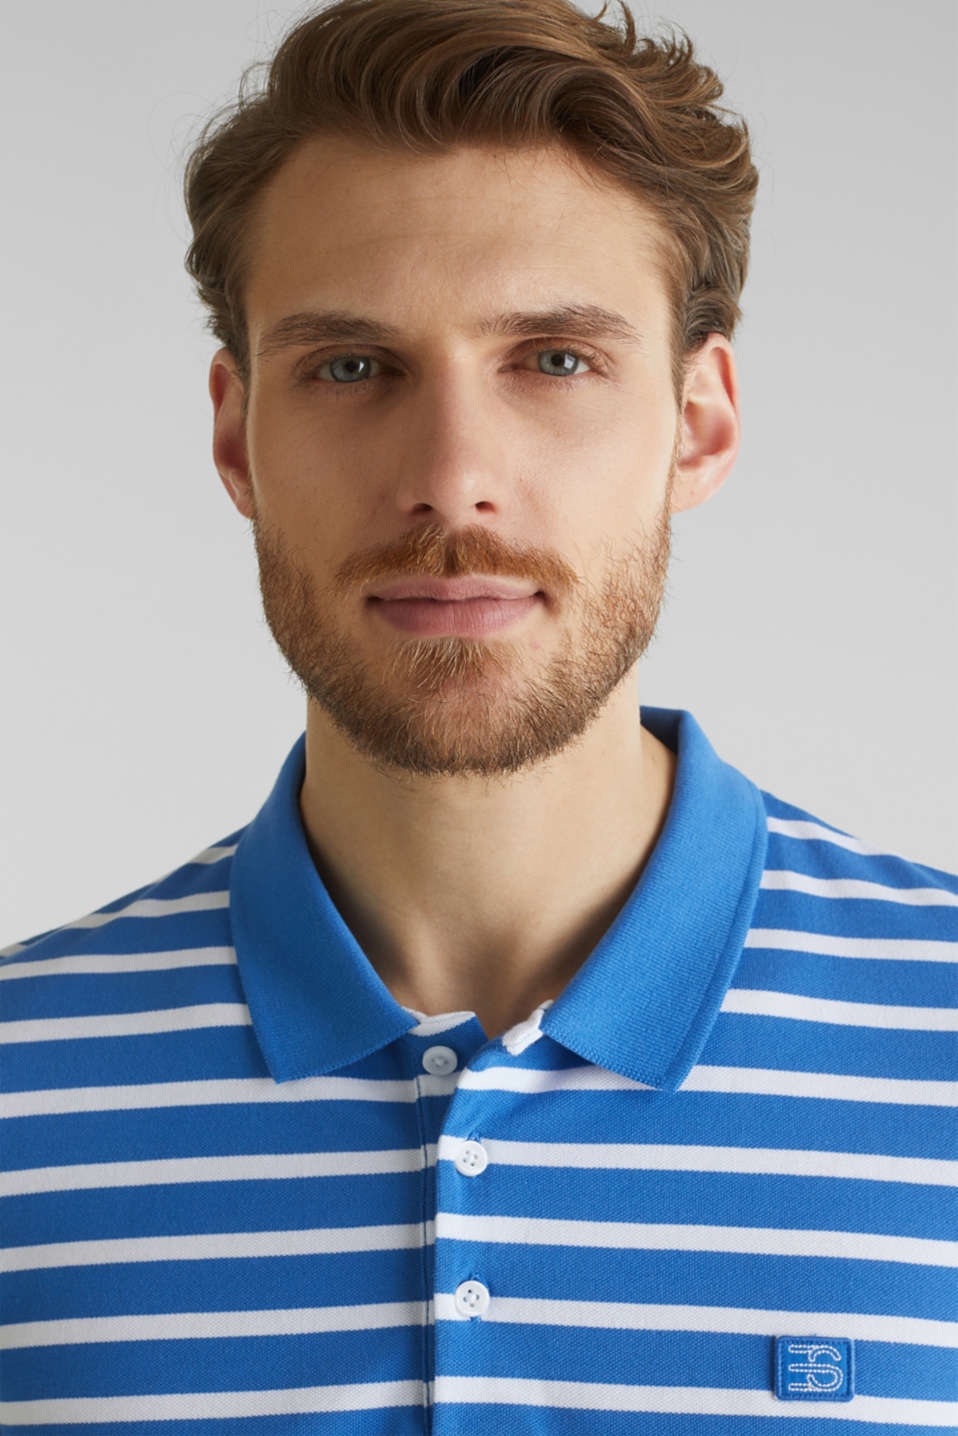 Piqué polo shirt in 100% cotton, BLUE 3, detail image number 1